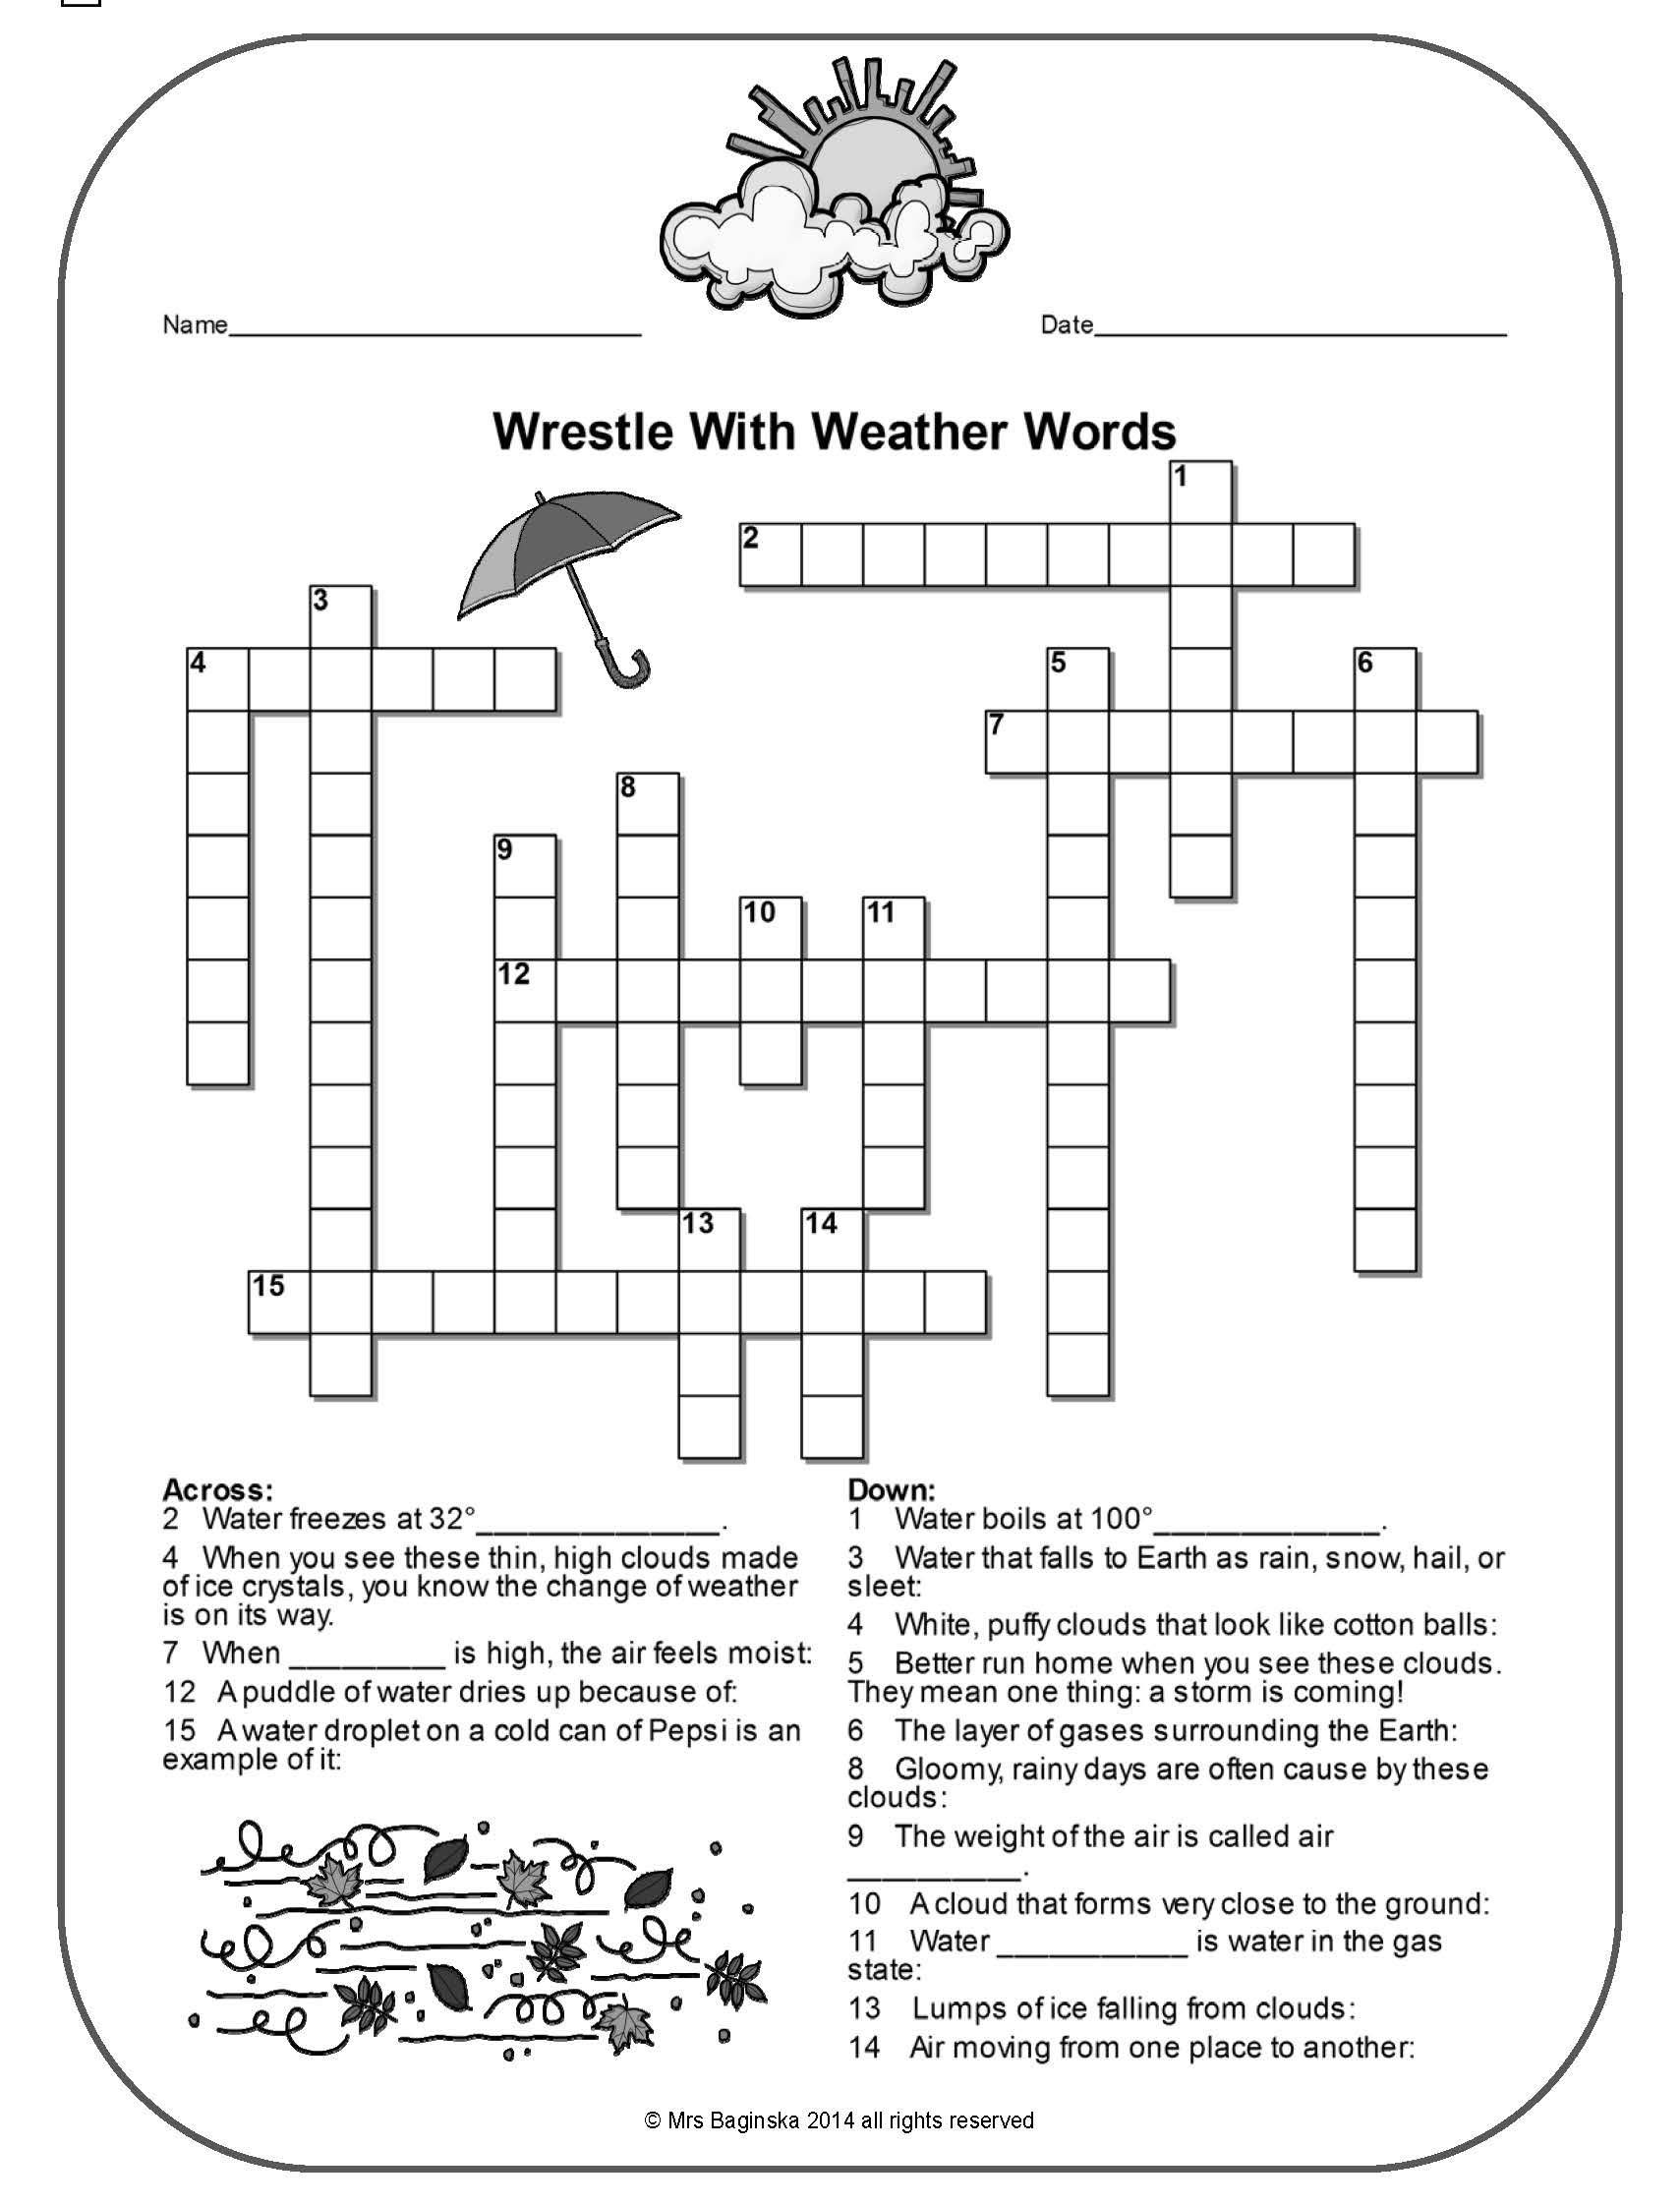 Free Weather Crossword With A Hidden Message Perfect For The Review Of Important Meteorology